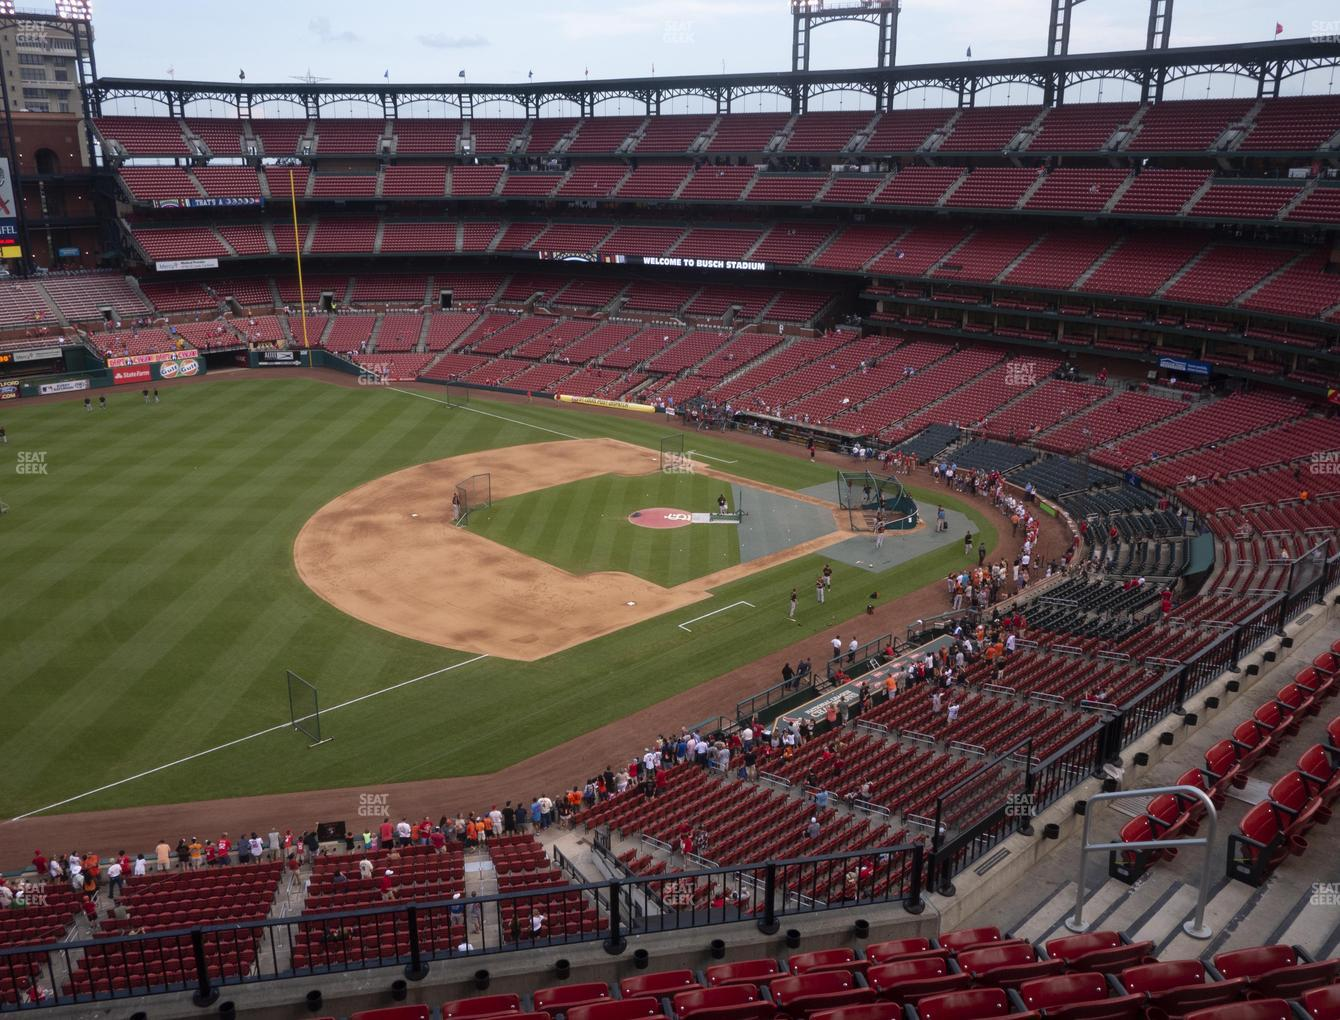 St. Louis Cardinals at Busch Stadium Left Field Pavilion 361 View